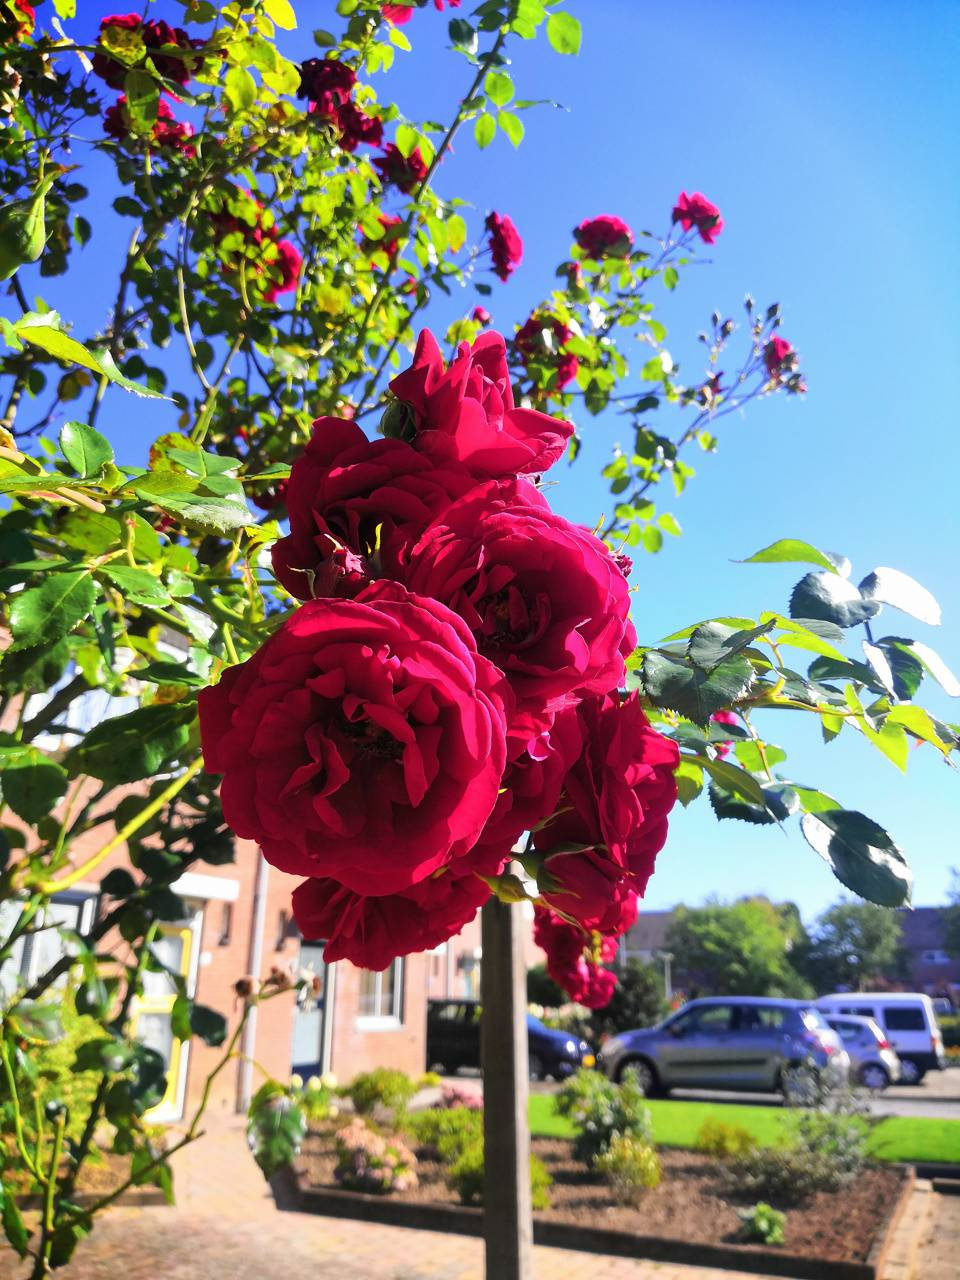 Rose in the summer